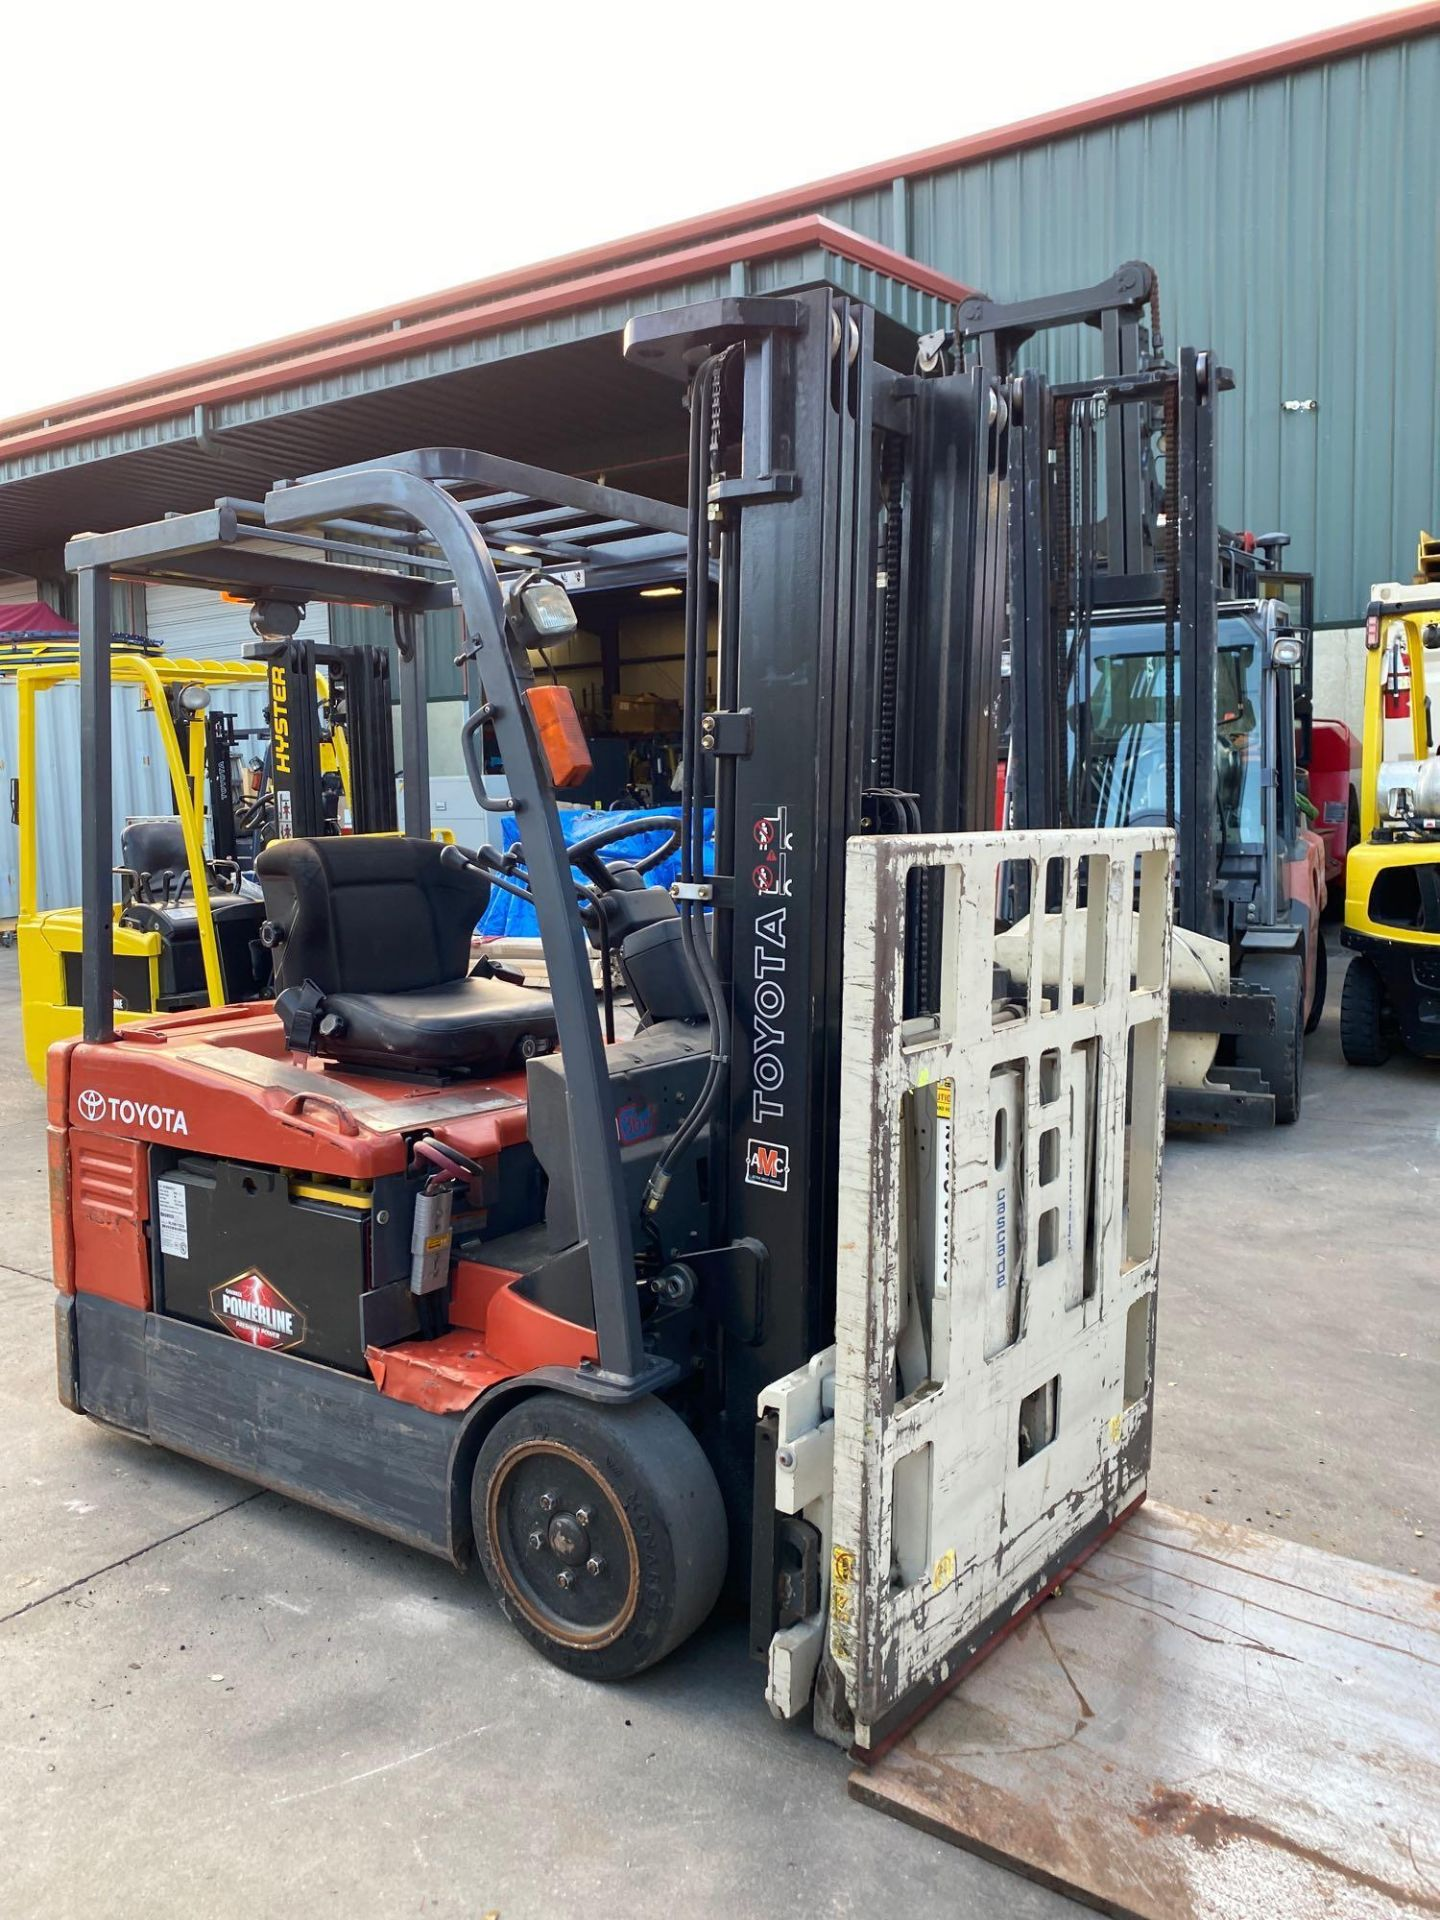 TOYOTA ELECTRIC FORKLIFT MODEL 7FBEU20, 4,000 LB CAPACITY, CASCADE PUSH/PULL ATTACHMENT, TILT, SIDE - Image 9 of 24